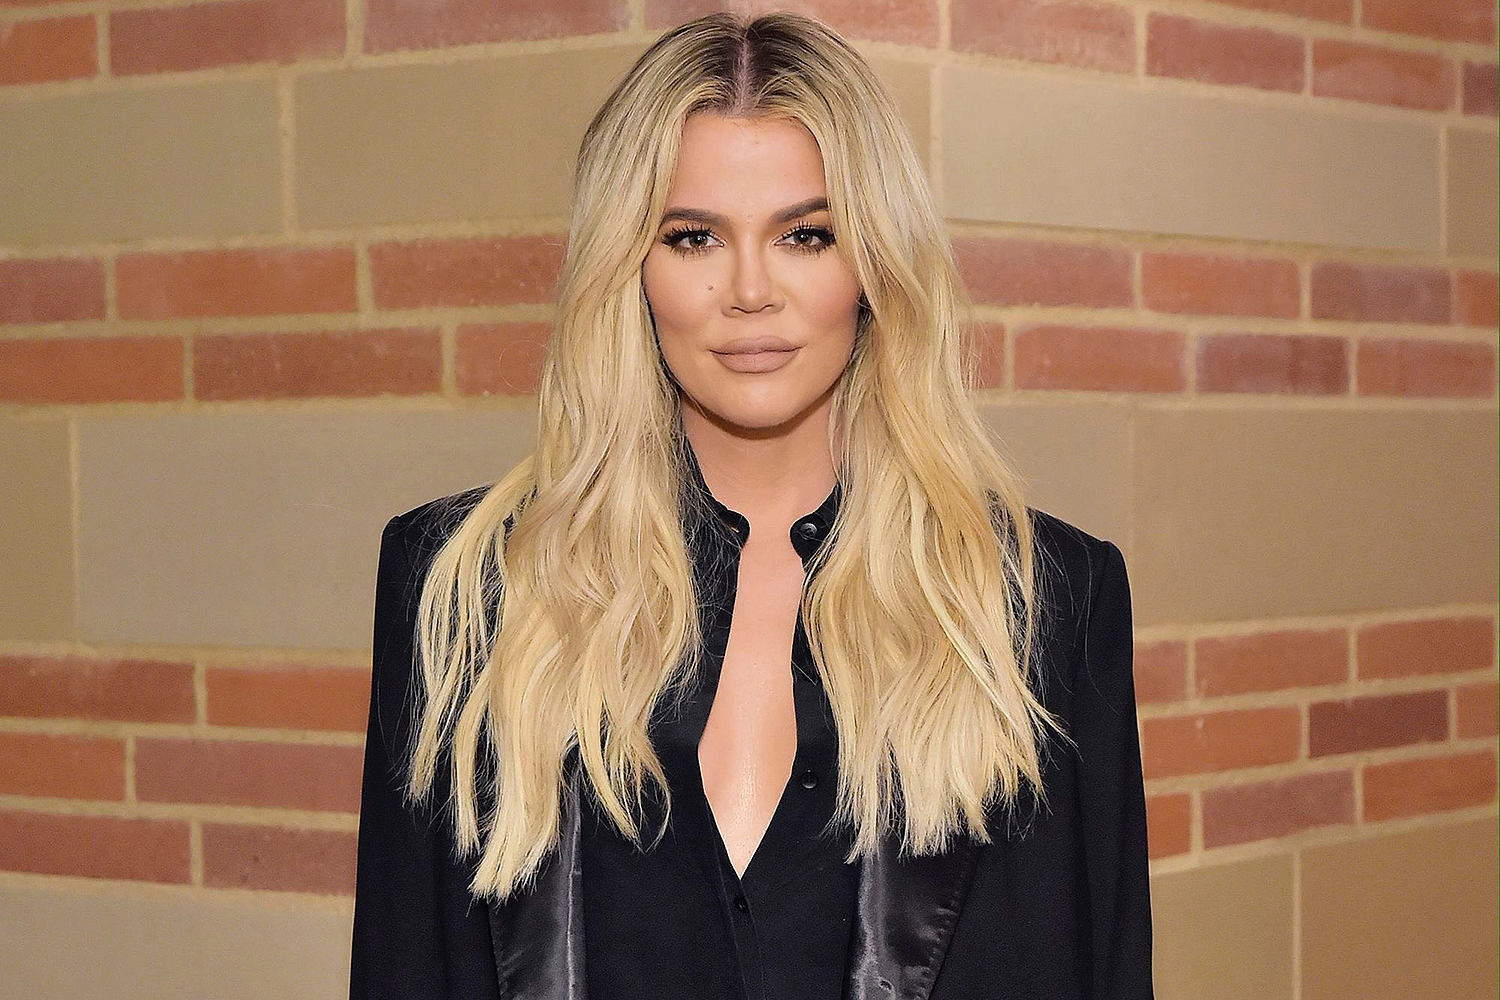 kuwtk-khloe-kardashian-claims-hate-and-criticism-no-longer-affects-her-heres-why